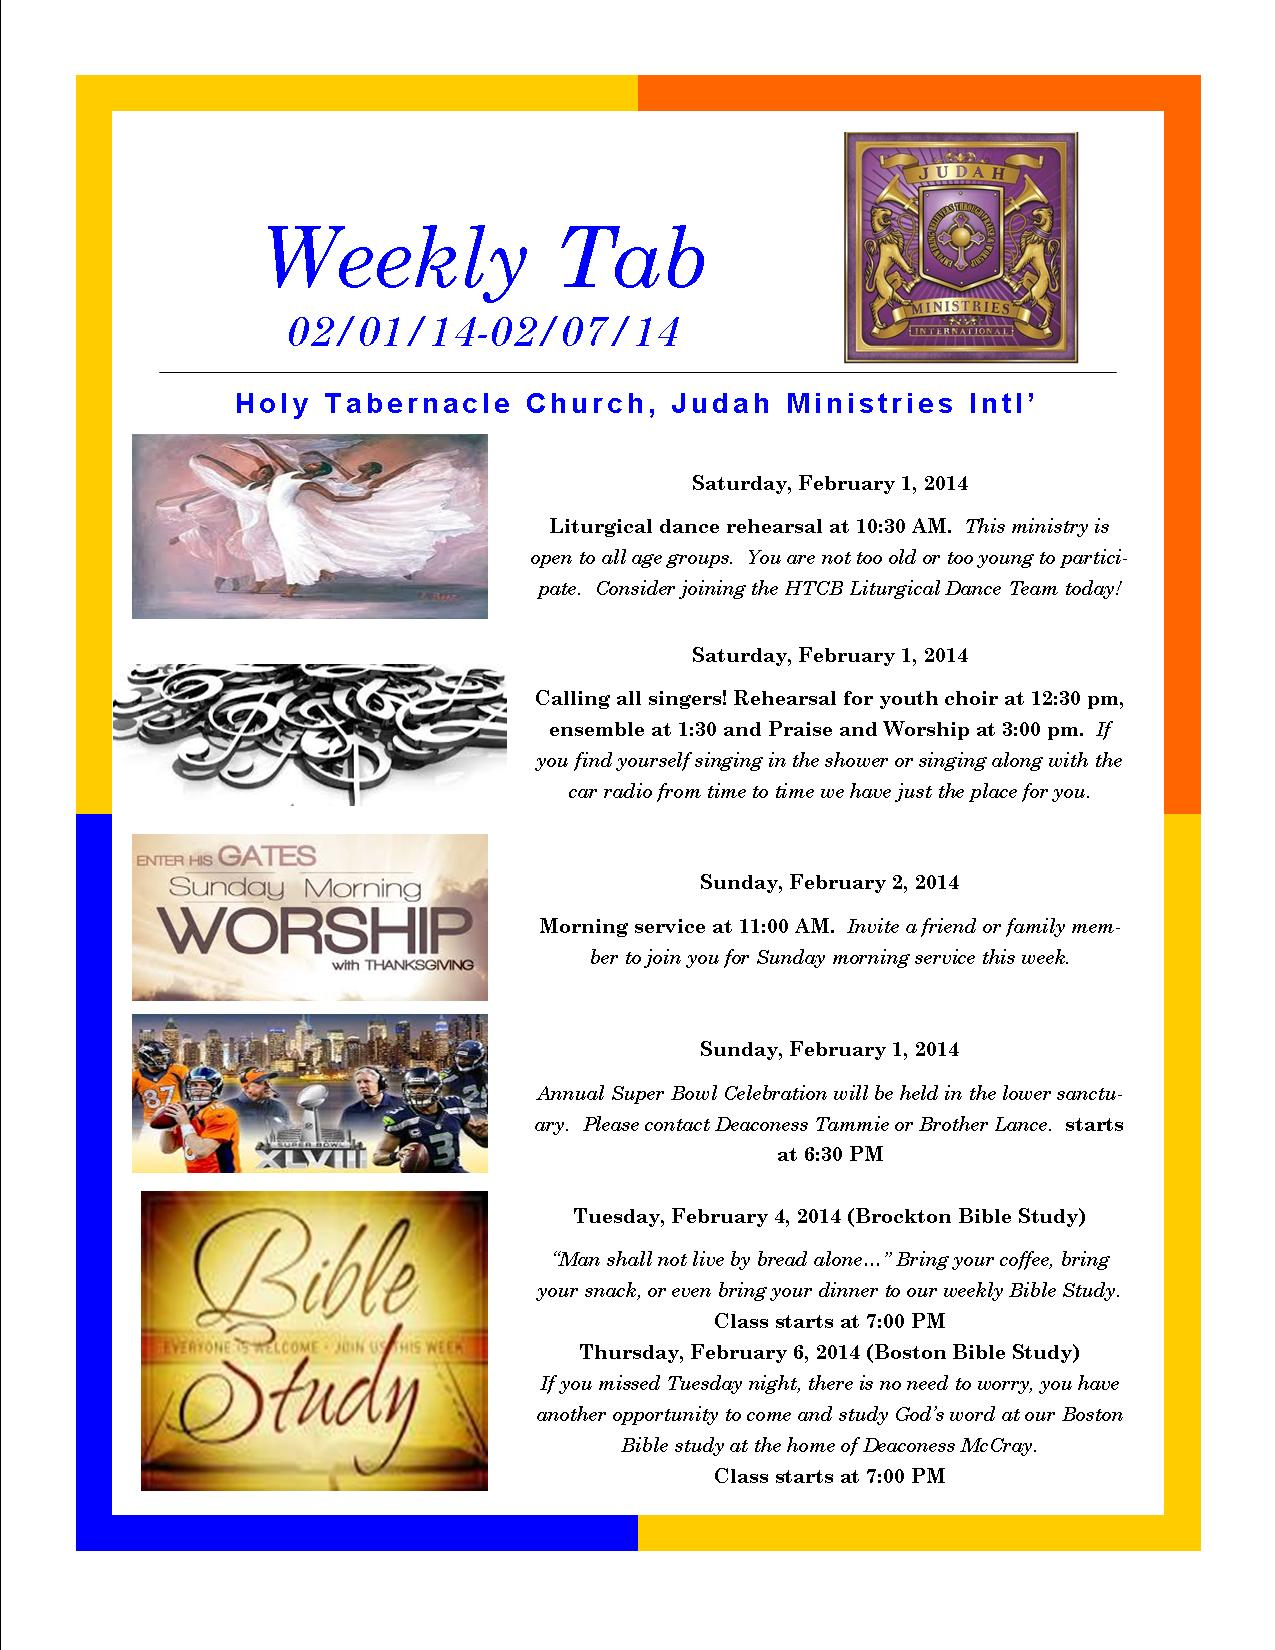 Weekly tab brochure